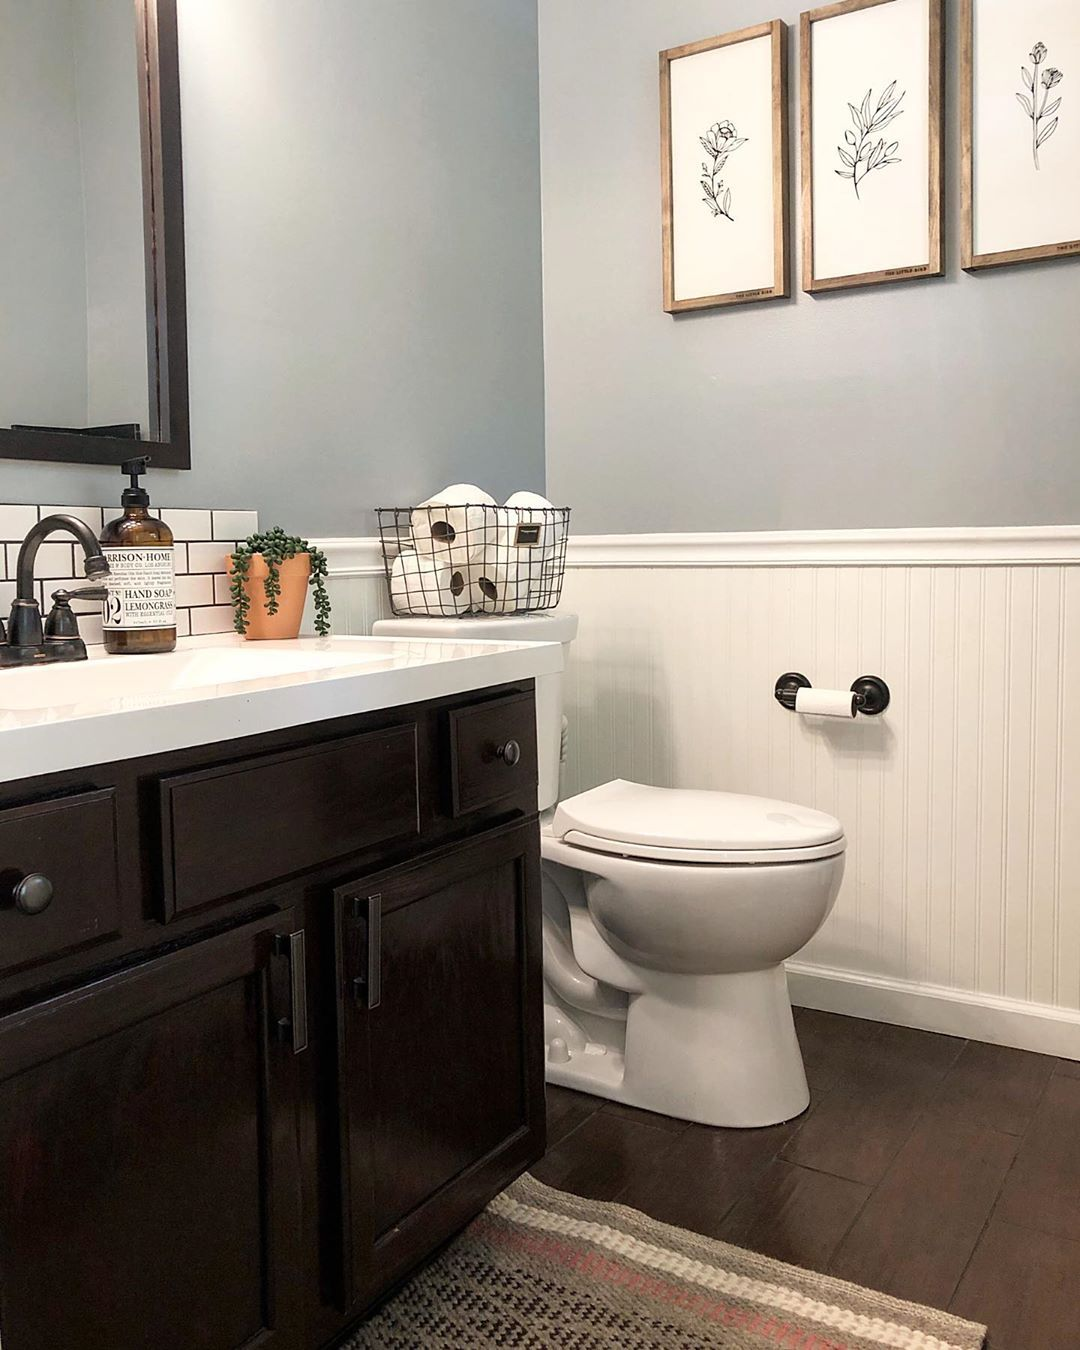 Jen Our Haven Bliss On Instagram Happy Friday Anyone Else Feel Like May Is Craz Sherwin Williams Paint Colors Guest Bathroom Small Guest Bathroom Remodel